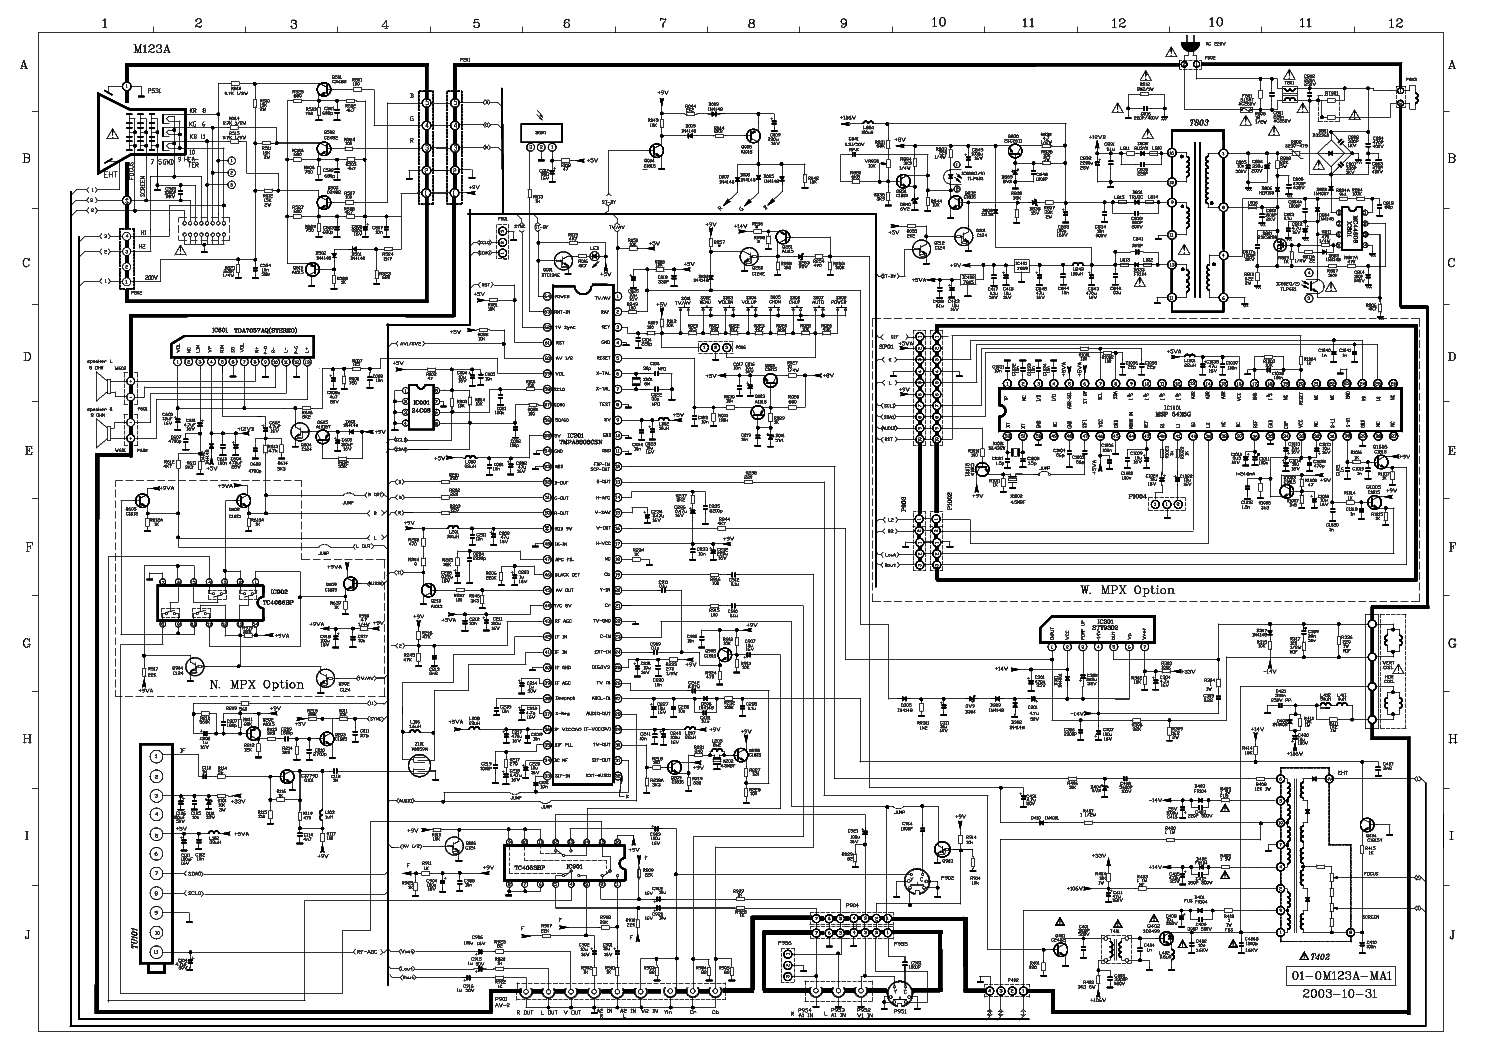 Singer tv circuit diagram diy wiring diagrams singer tv service manual how to and user guide instructions u2022 rh taxibermuda co singer tv schematic diagram radio receiver circuit diagram cheapraybanclubmaster Images